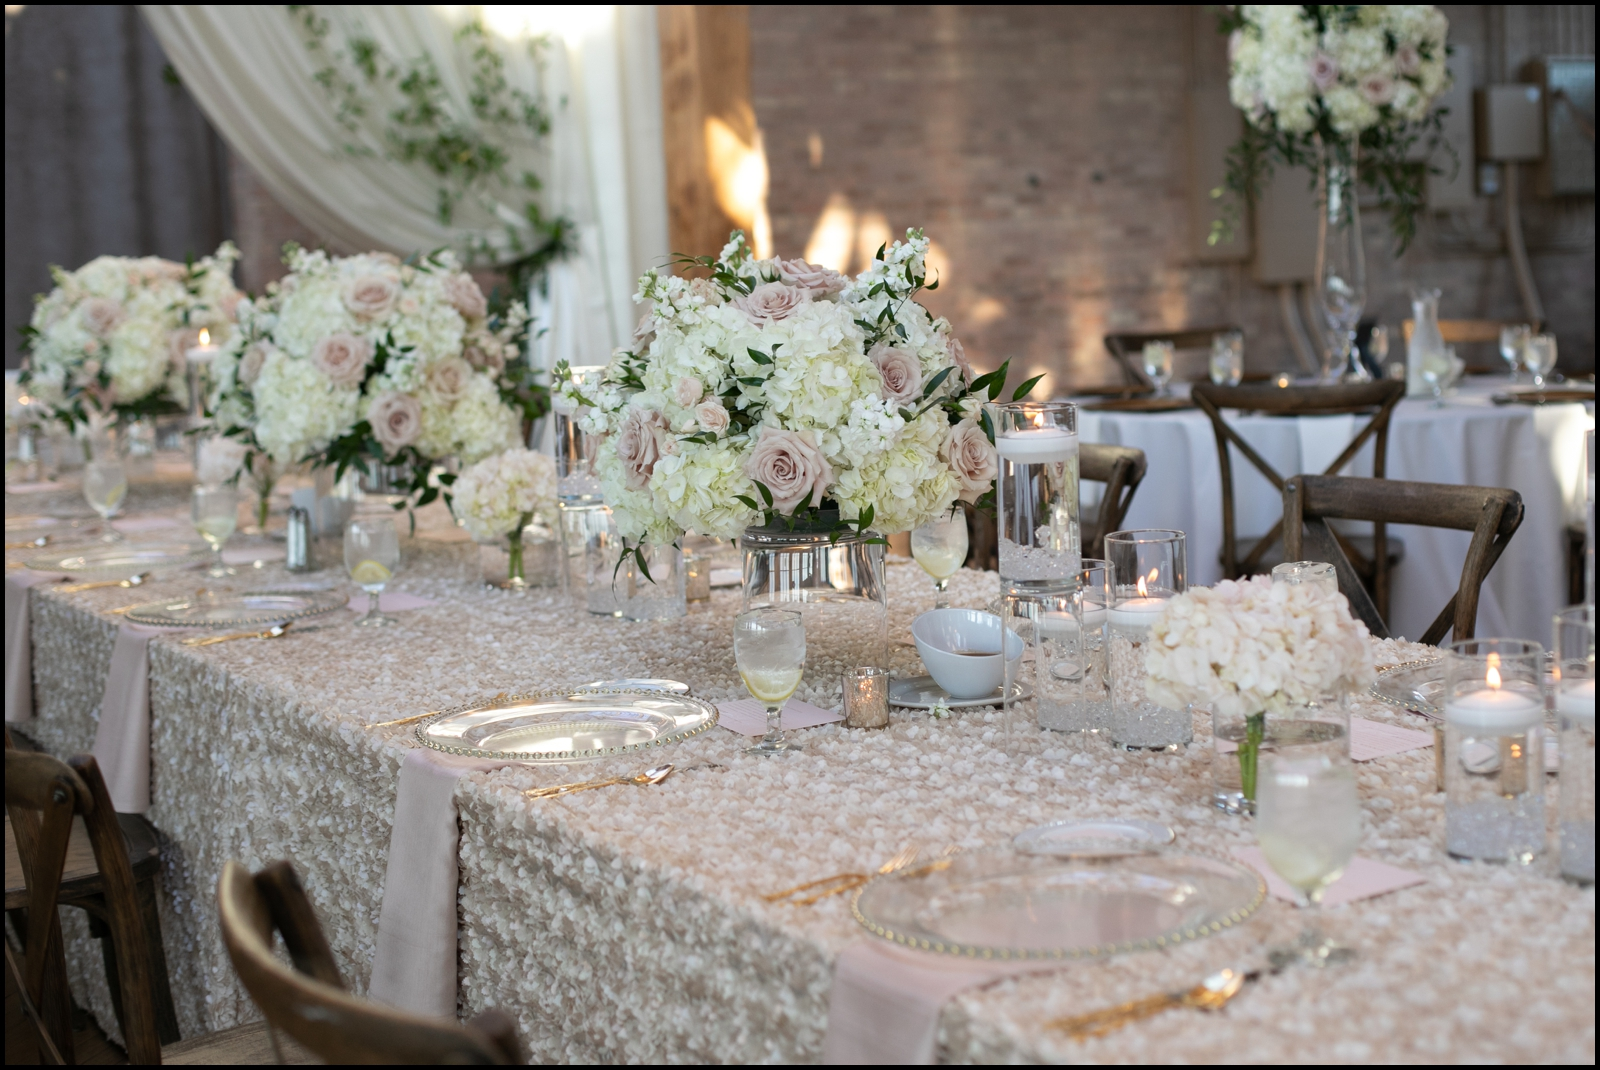 All white wedding theme